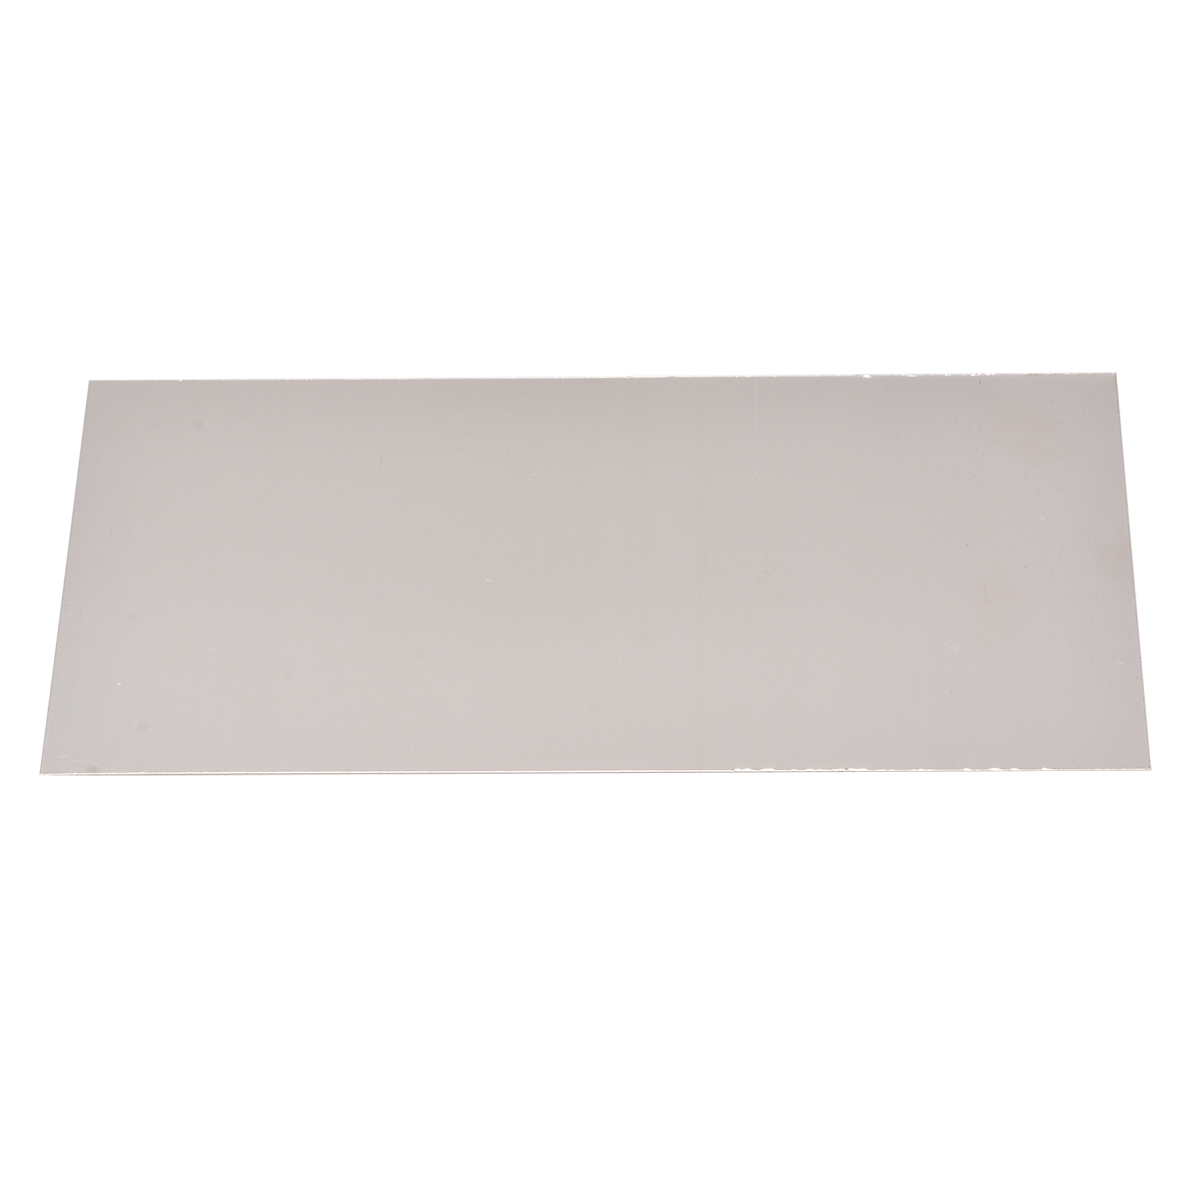 1pc 99.8% Pure Nickel Foil Plate Anti-corrosion Nickel Sheet Metal Industry Accessories for Electroplating 0.3*100*200mm1pc 99.8% Pure Nickel Foil Plate Anti-corrosion Nickel Sheet Metal Industry Accessories for Electroplating 0.3*100*200mm